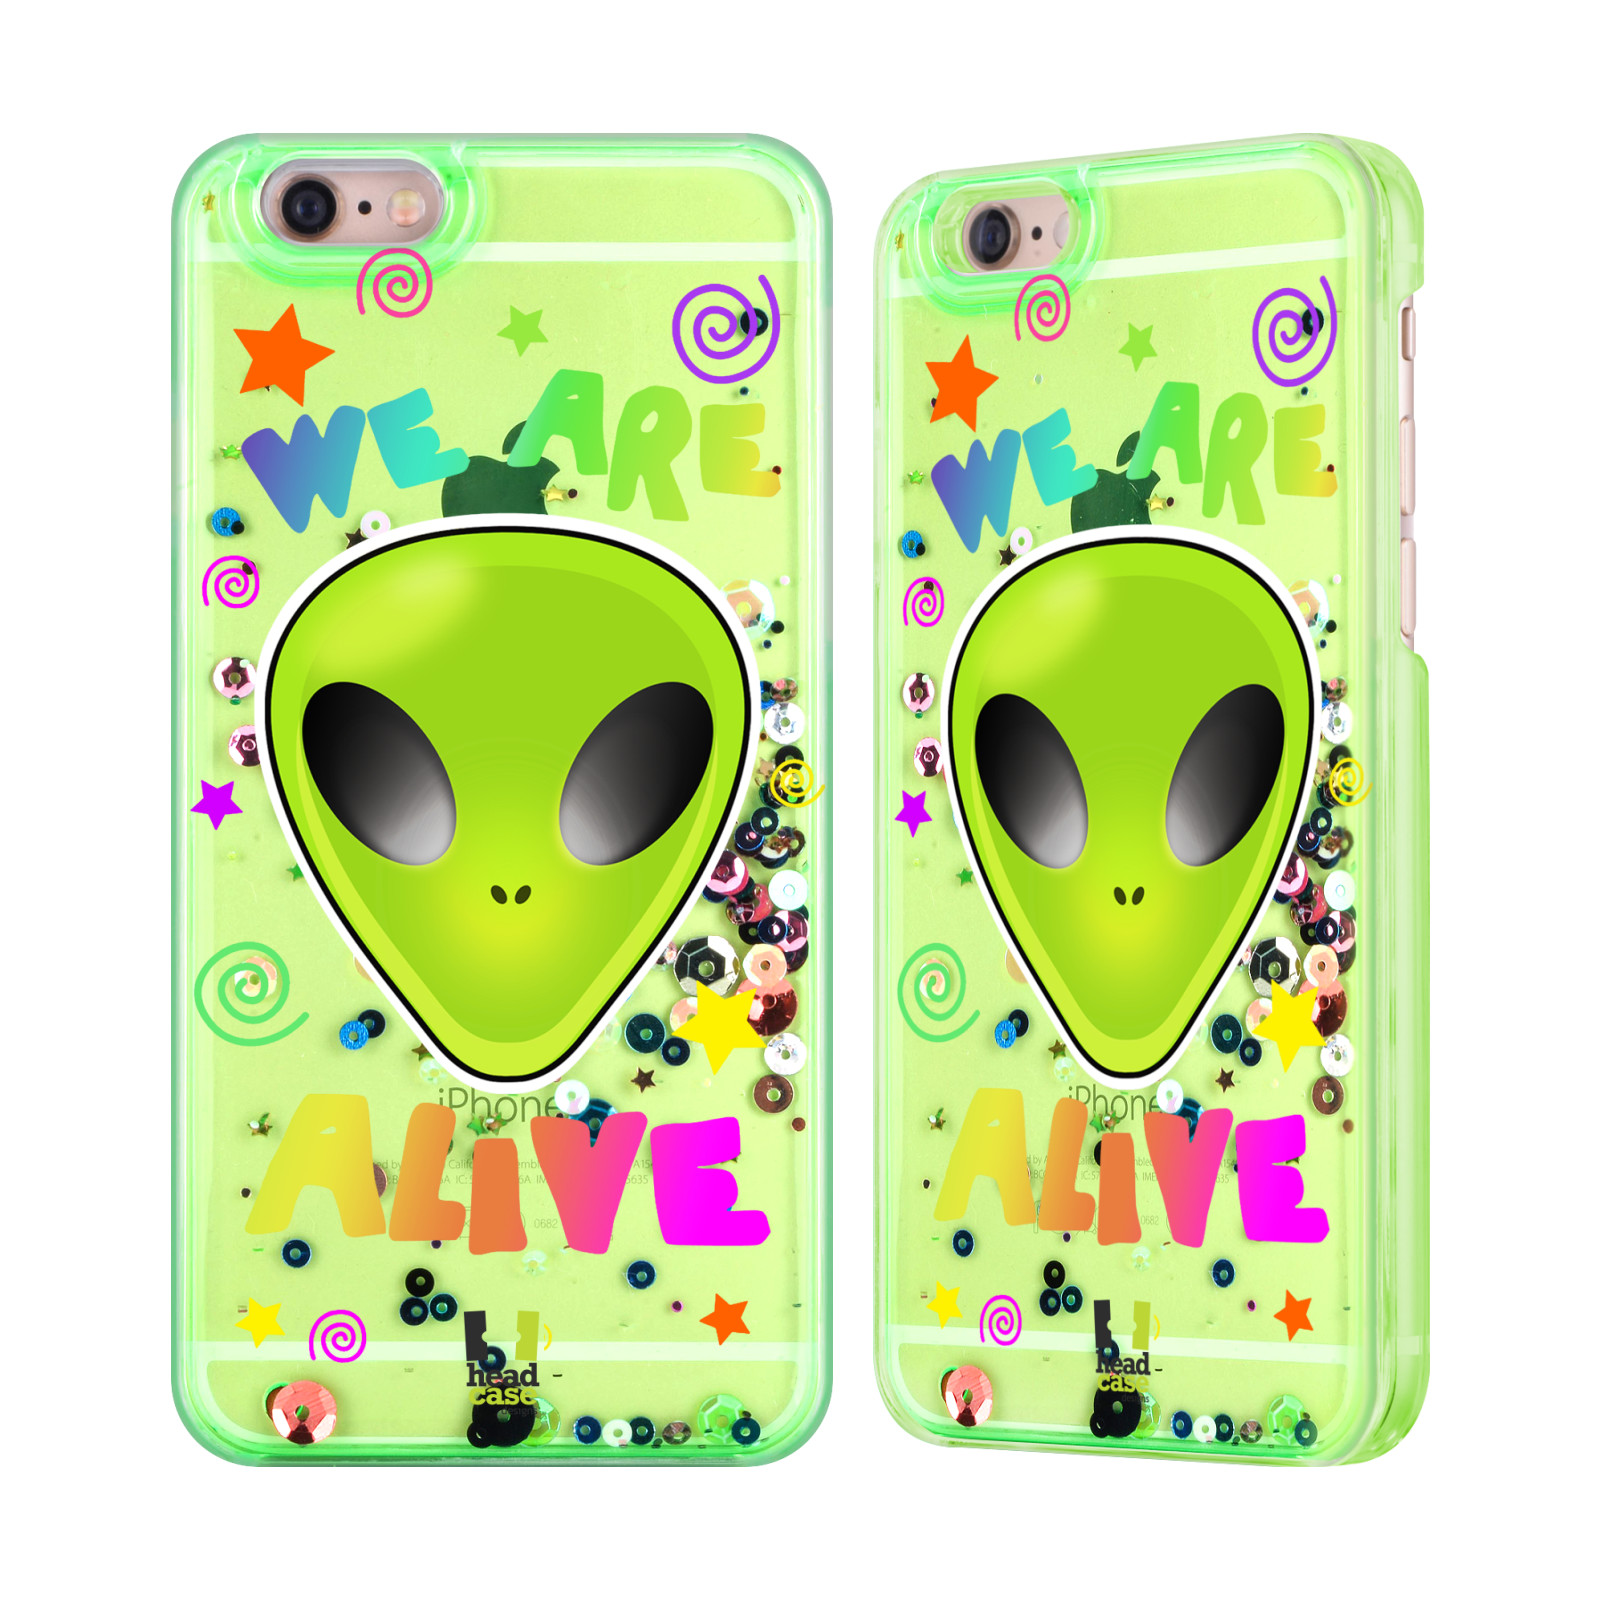 Android Bluetooth Keyboard Emoji: HEAD CASE ALIEN EMOJI GREEN SEQUINS AND STAR FOR APPLE IPHONE SAMSUNG PHONES